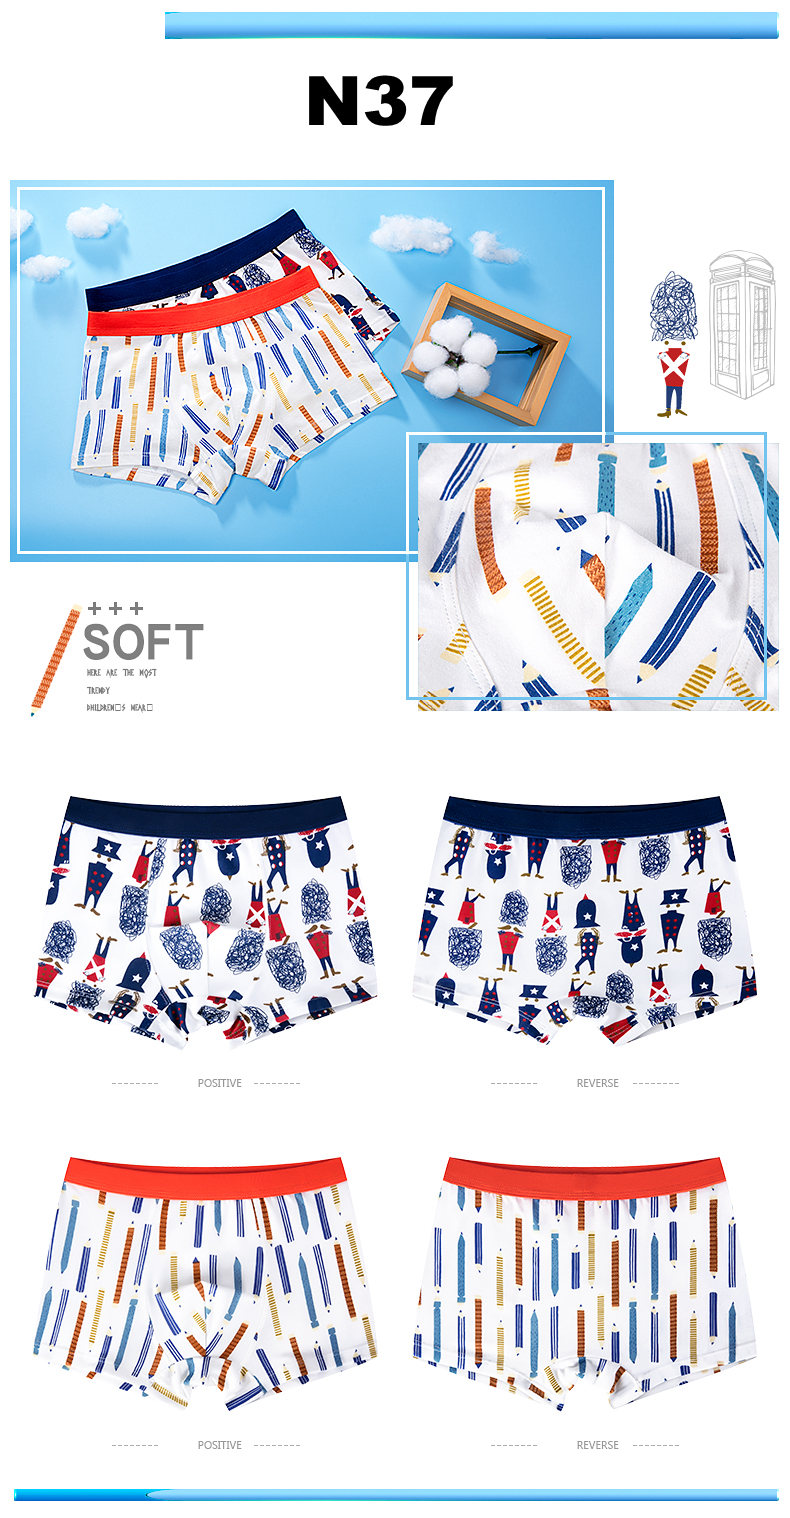 4 Pcs High Quality Children's Underwear for Kids Cartoon Cat Shorts Soft Cotton Underpants Boys Teenage Striped Panties 4-16T